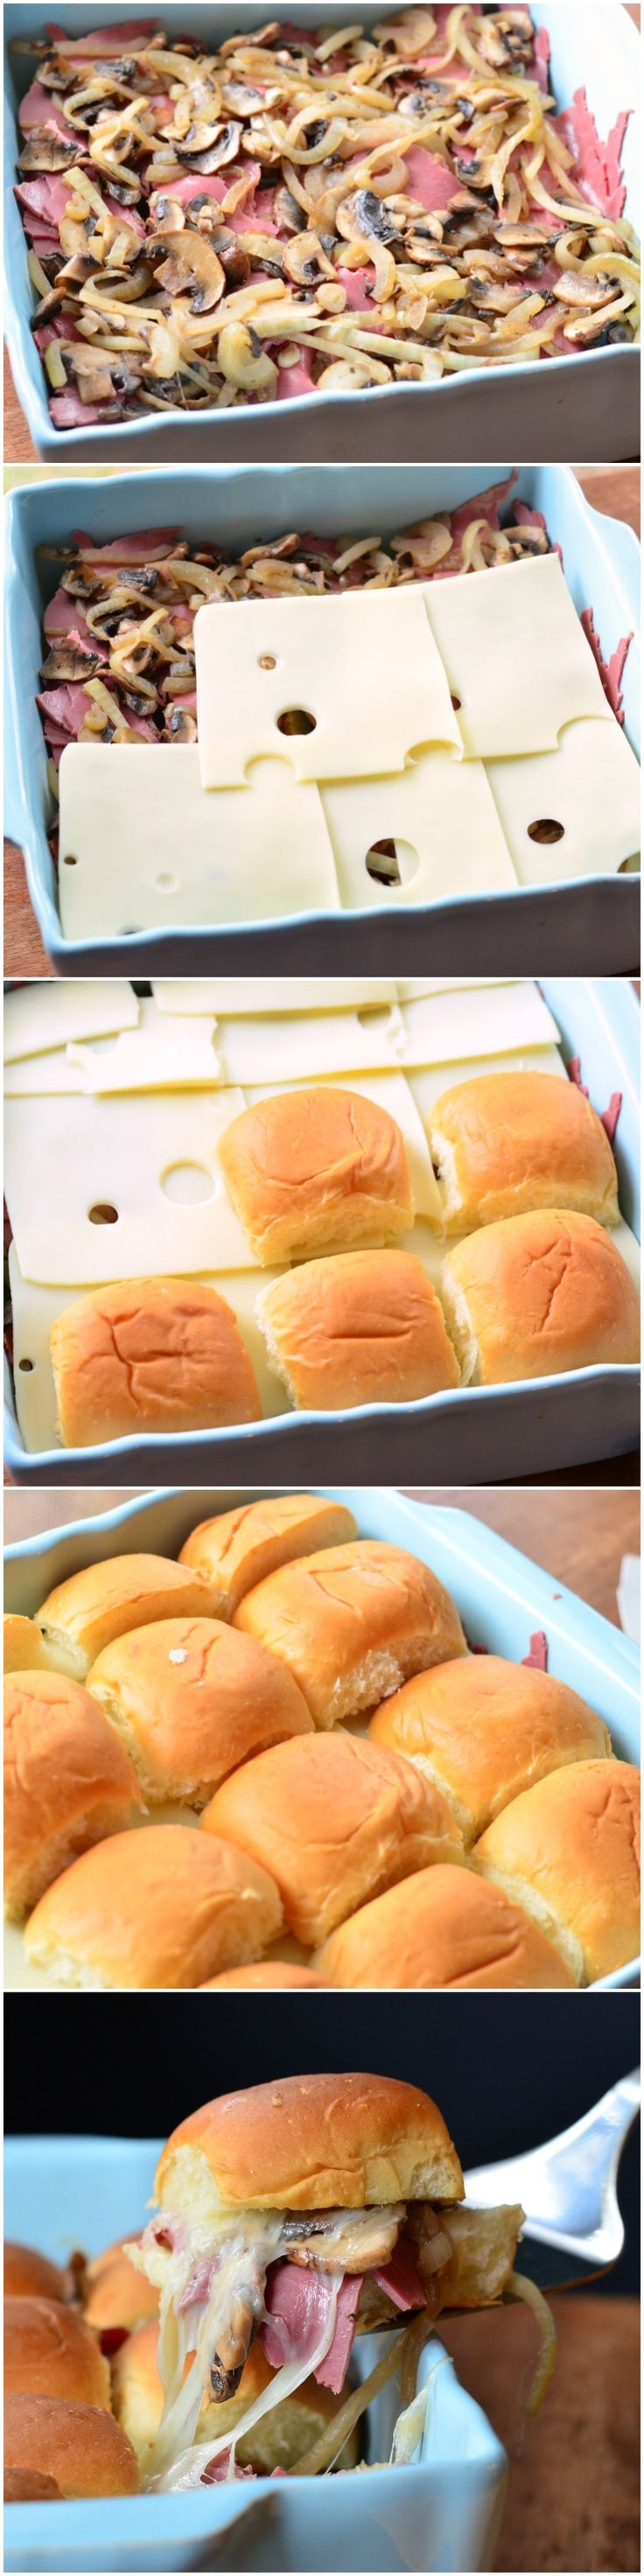 Baked Corned Beef Sliders | willcookforsmiles.com #cornedbeef #sandwich